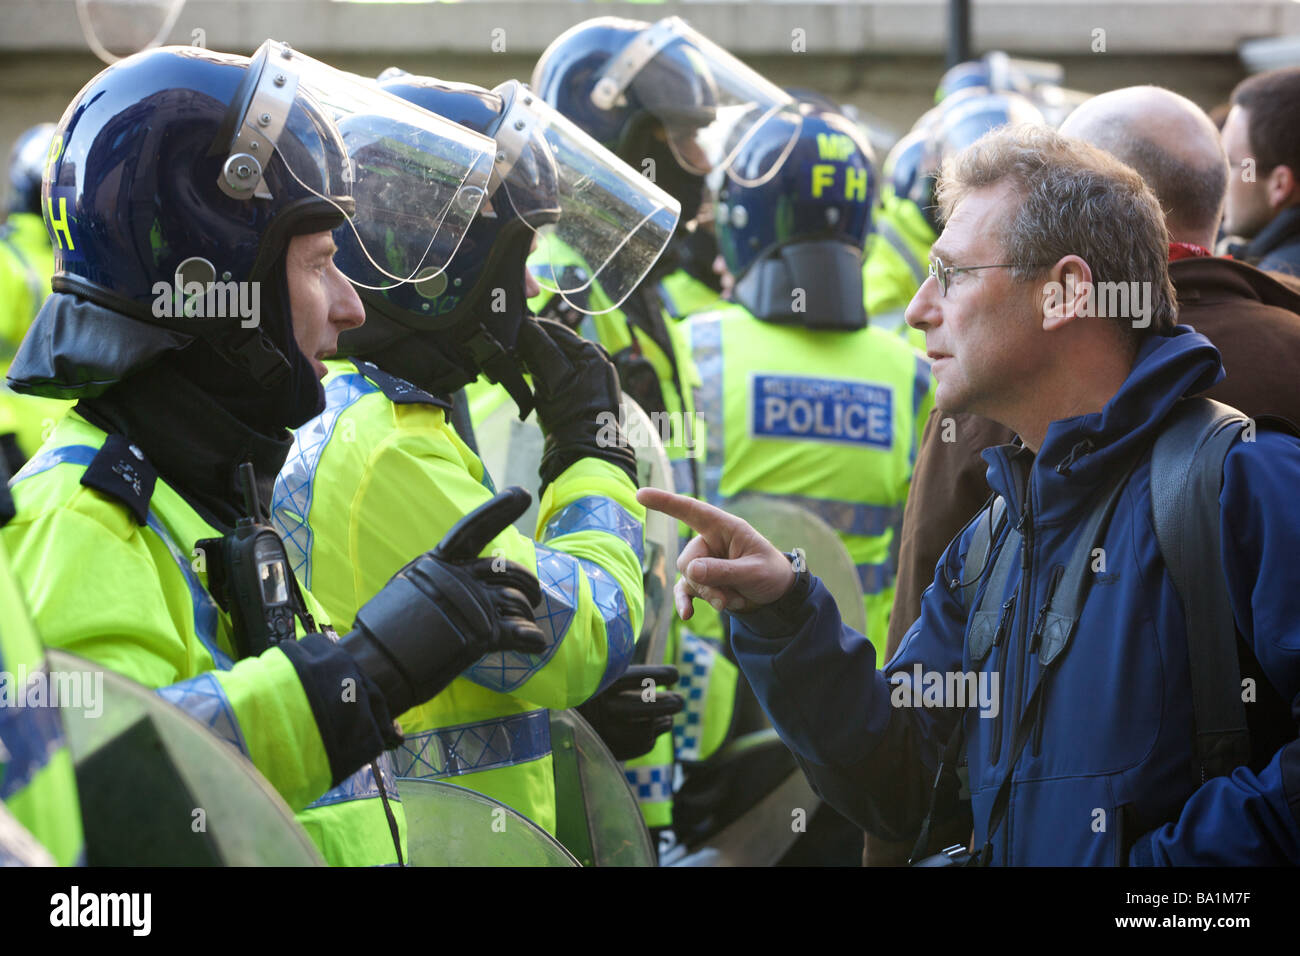 Demonstrator confronting policeman at G20 protests - Stock Image